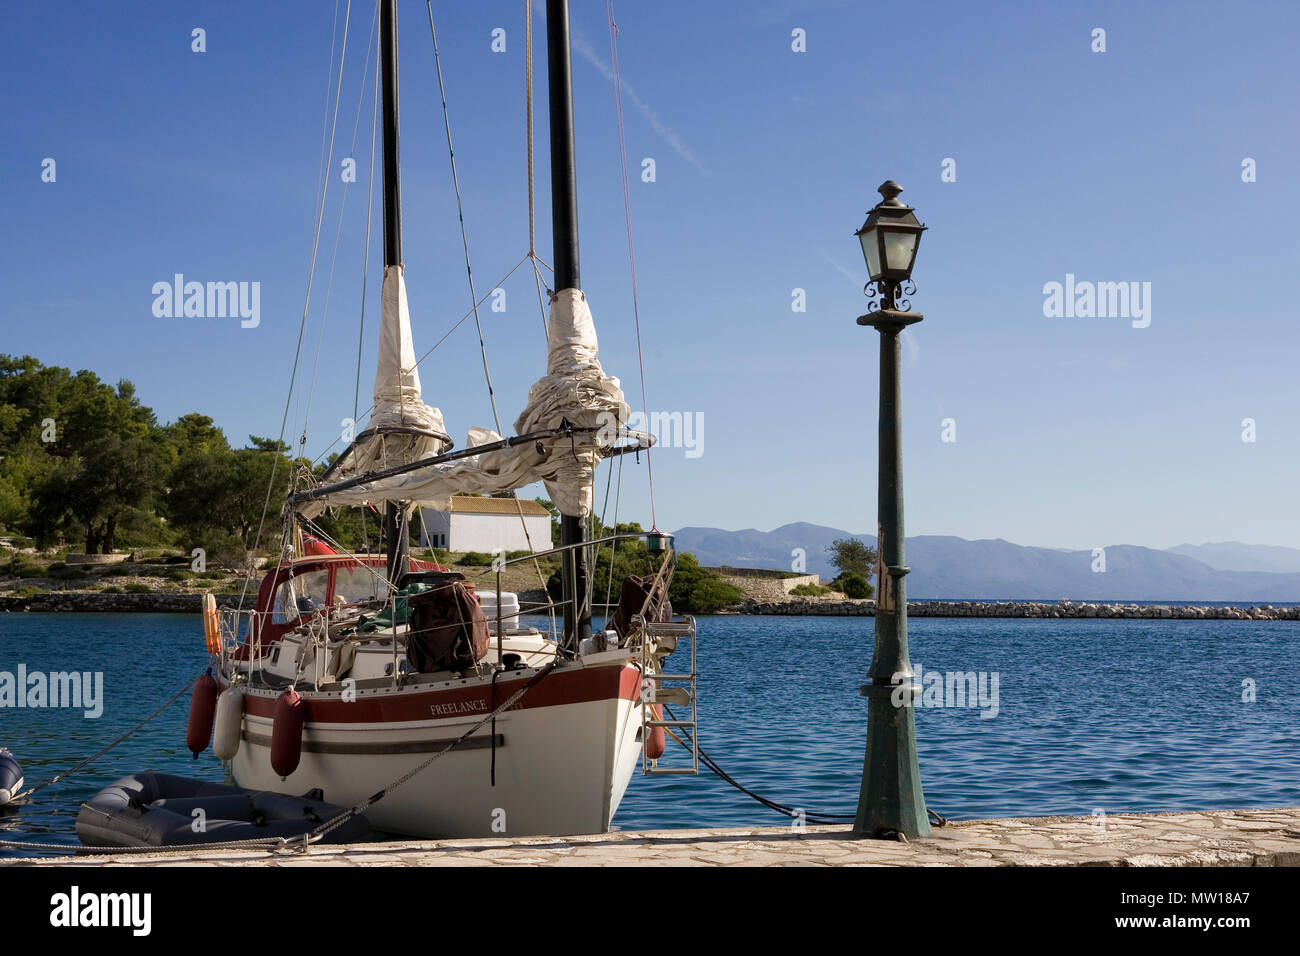 'Freelance' an unusual Freedom 30, Gaios harbour, Paxos, Greece - Stock Image